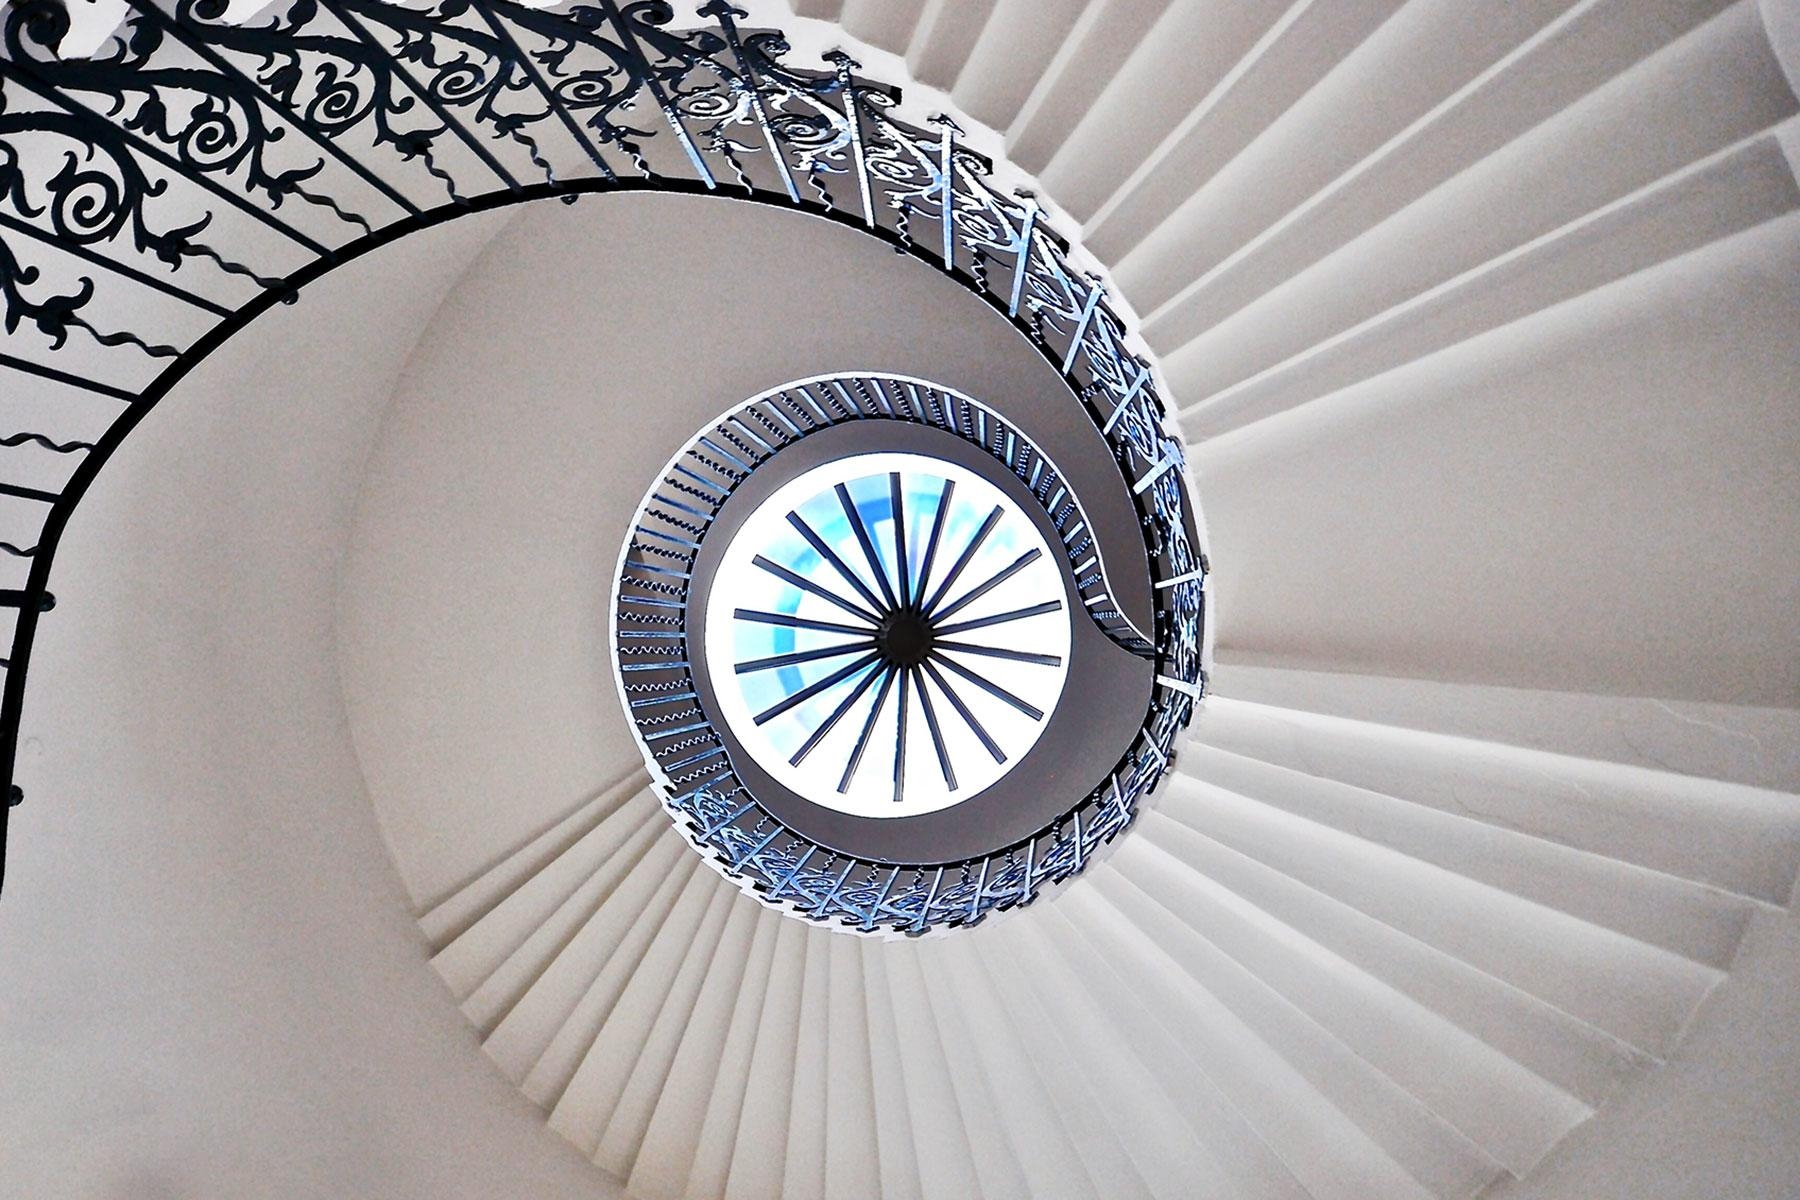 The 20 Most Incredible Staircases In The World – Fodors Travel Guide   Spiral Staircase Los Angeles   Old Fashioned   Most Efficient   Double Spiral   Rome   Topanga Canyon